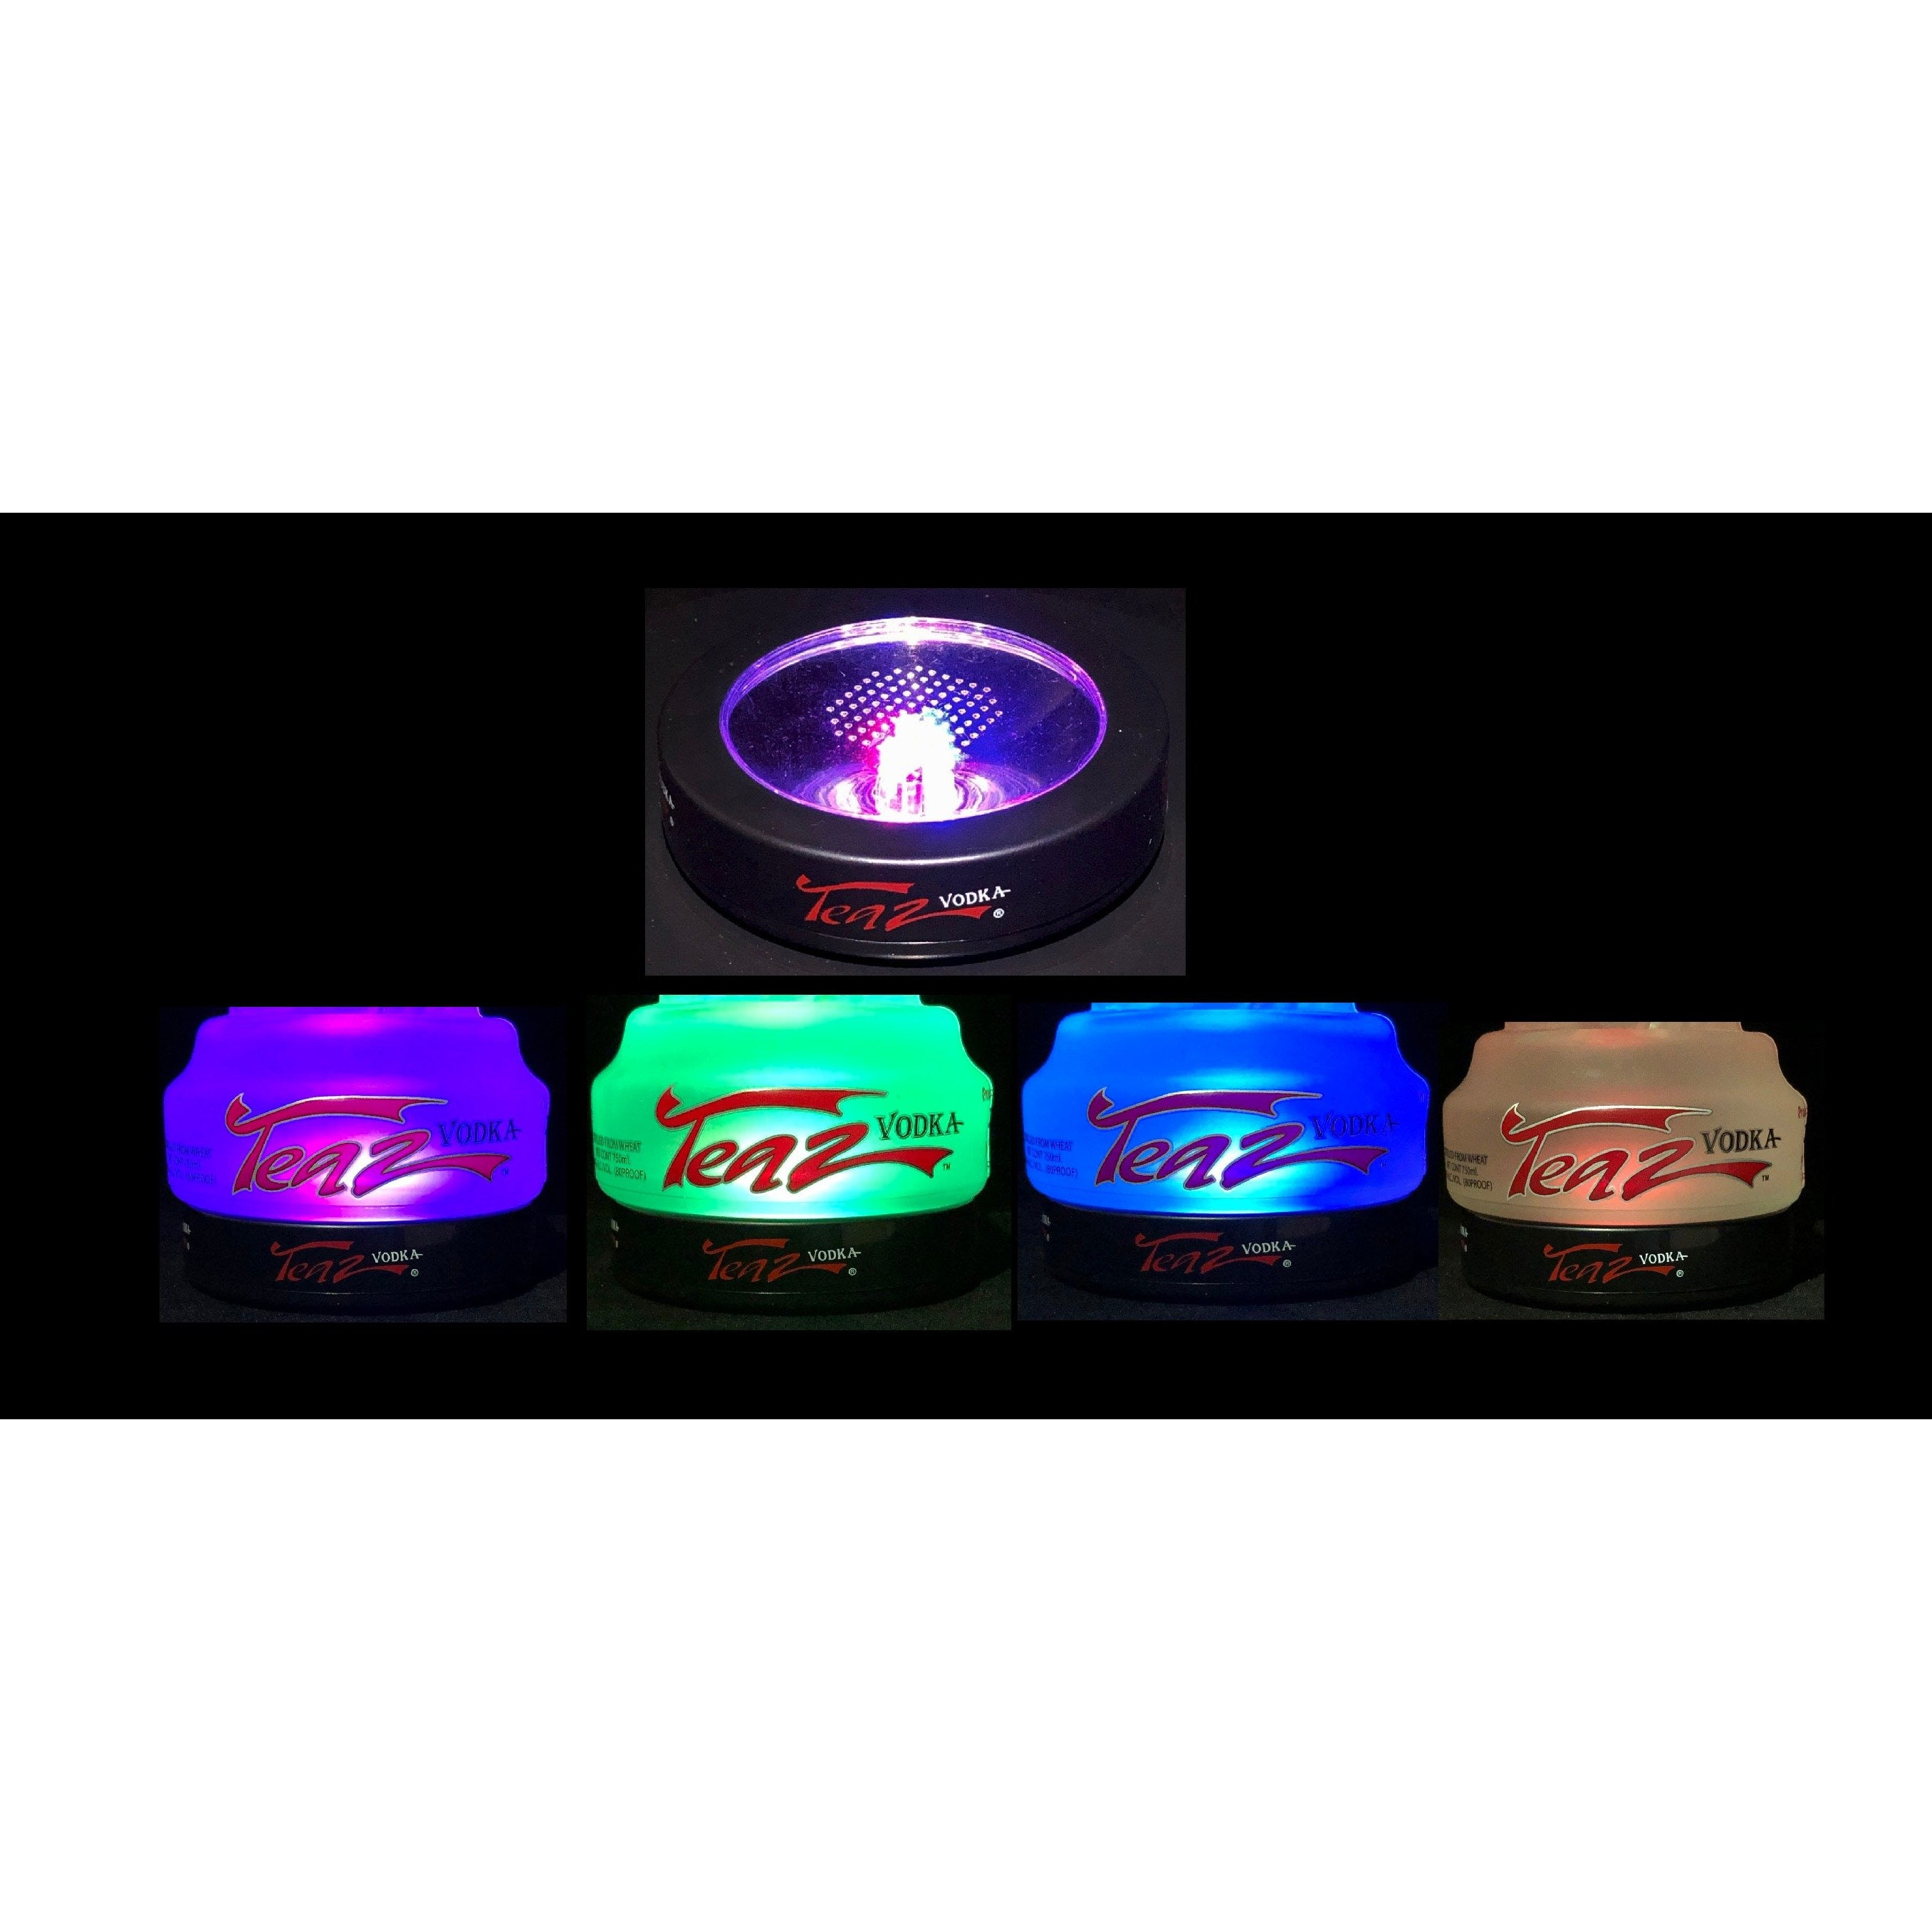 Teaz Vodka Multi Coaster Light